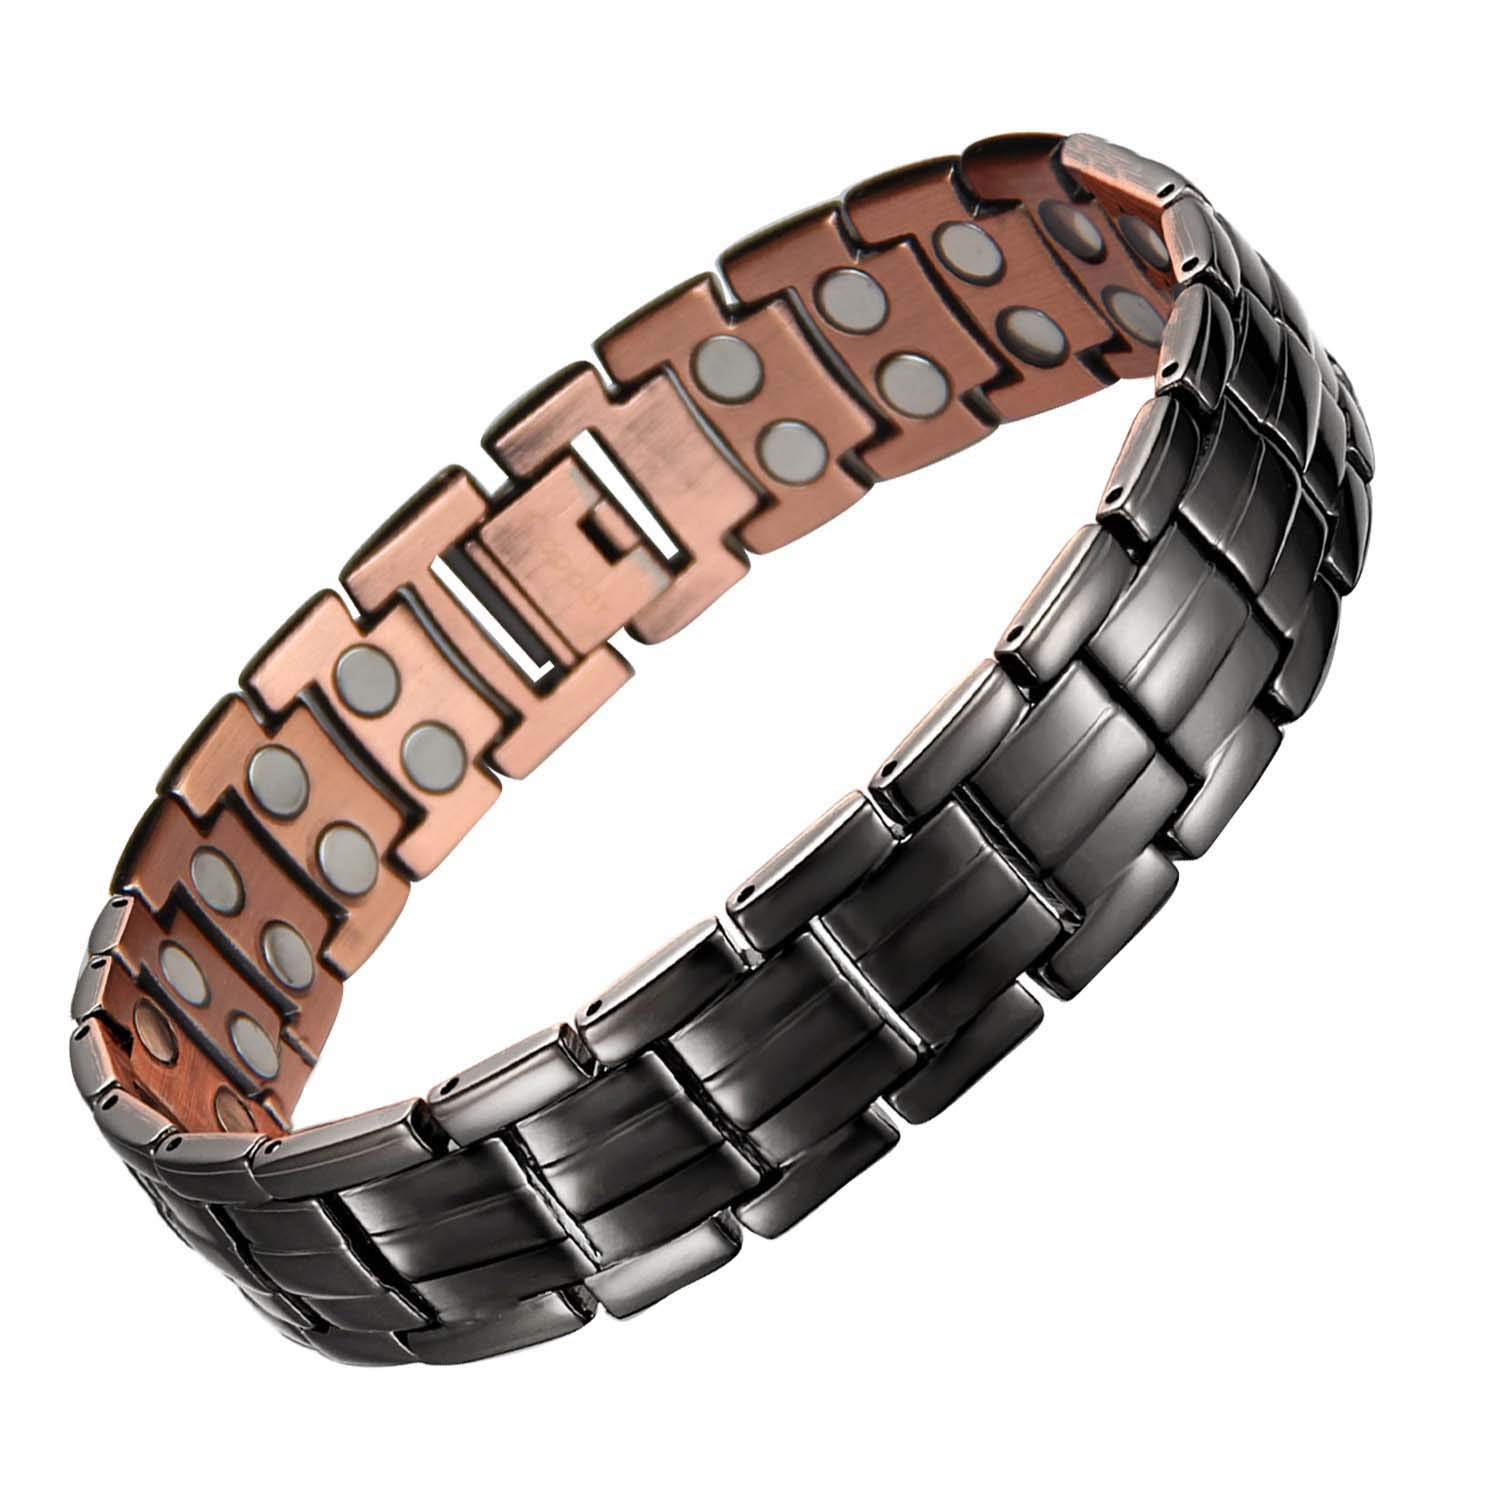 Mens Copper Bracelets 8.5'' Link Adjustable SizePure Copper with Double Raw 3000Gauss Magnets Pain Relief for Arthritis and Carpal Tunnel Migraines Tennis Elbow by MagEnergy